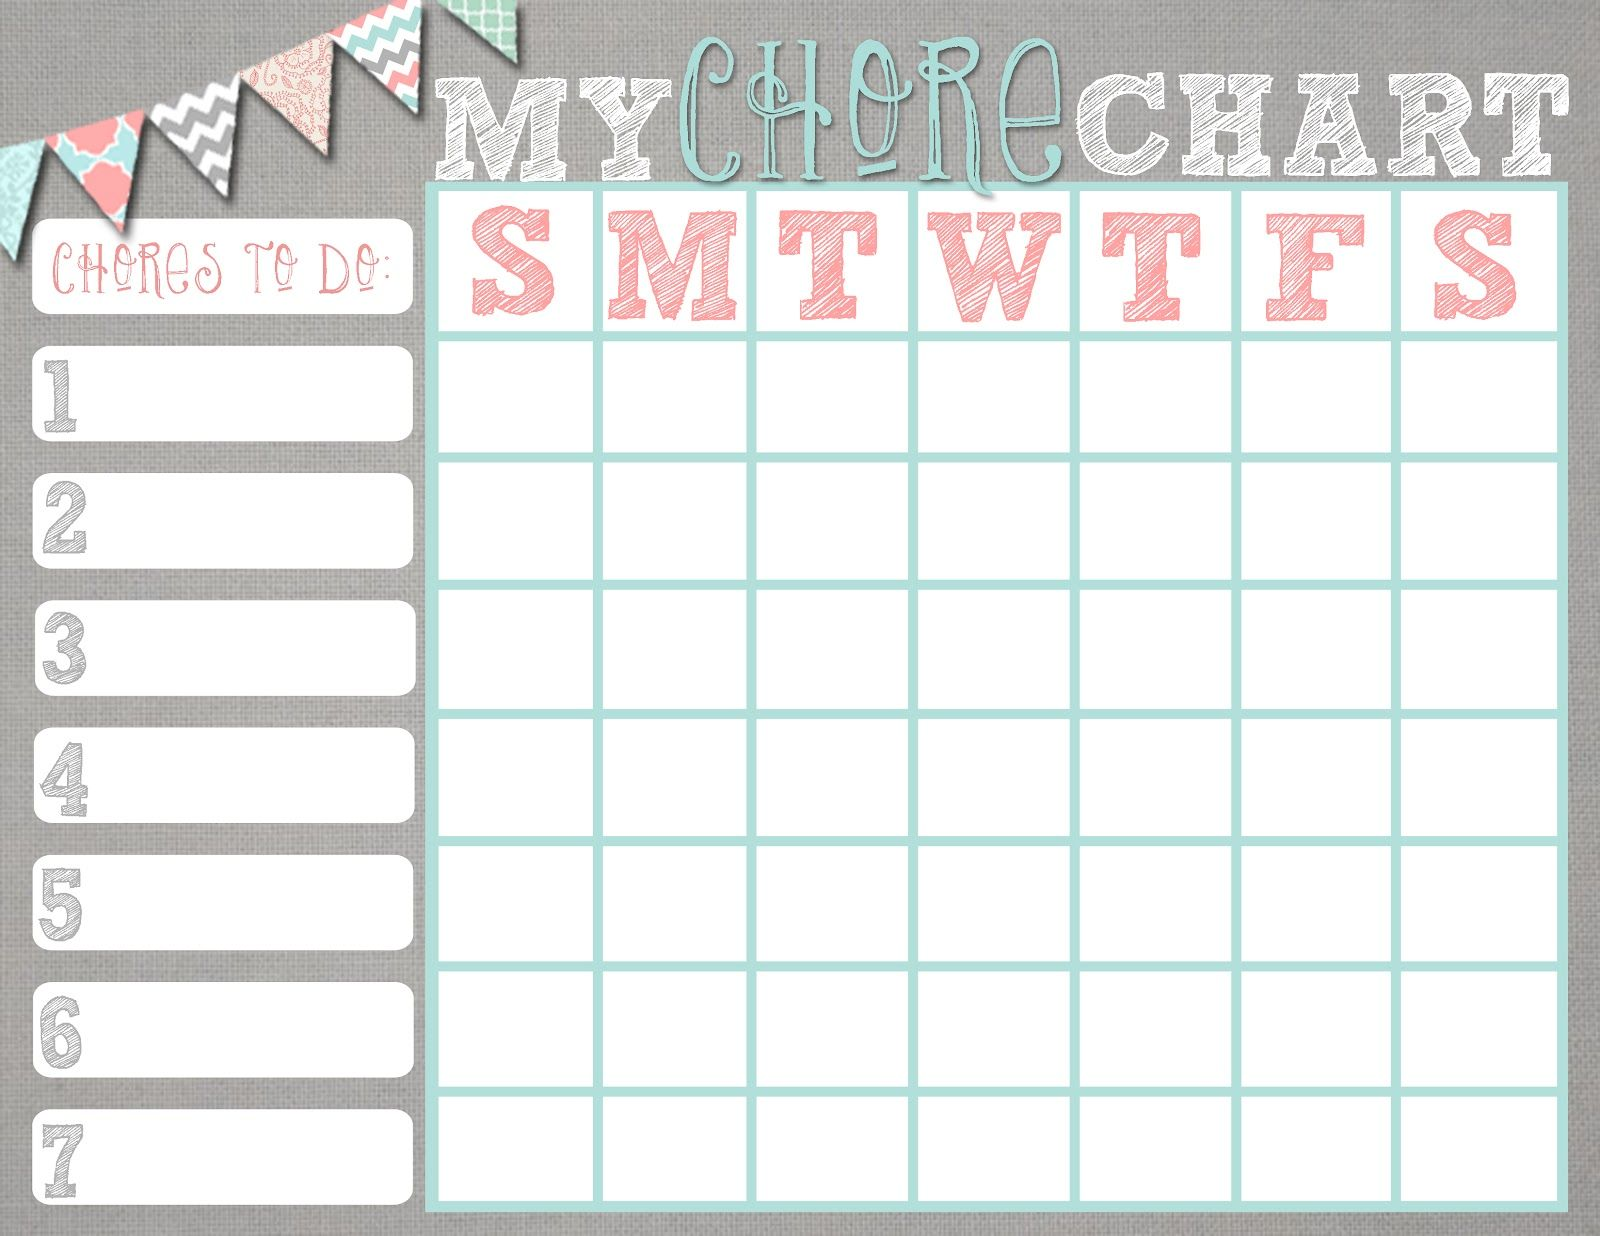 image regarding Chore Chart Printable Free named Absolutely free chore chart printables. Boy and female products thatll